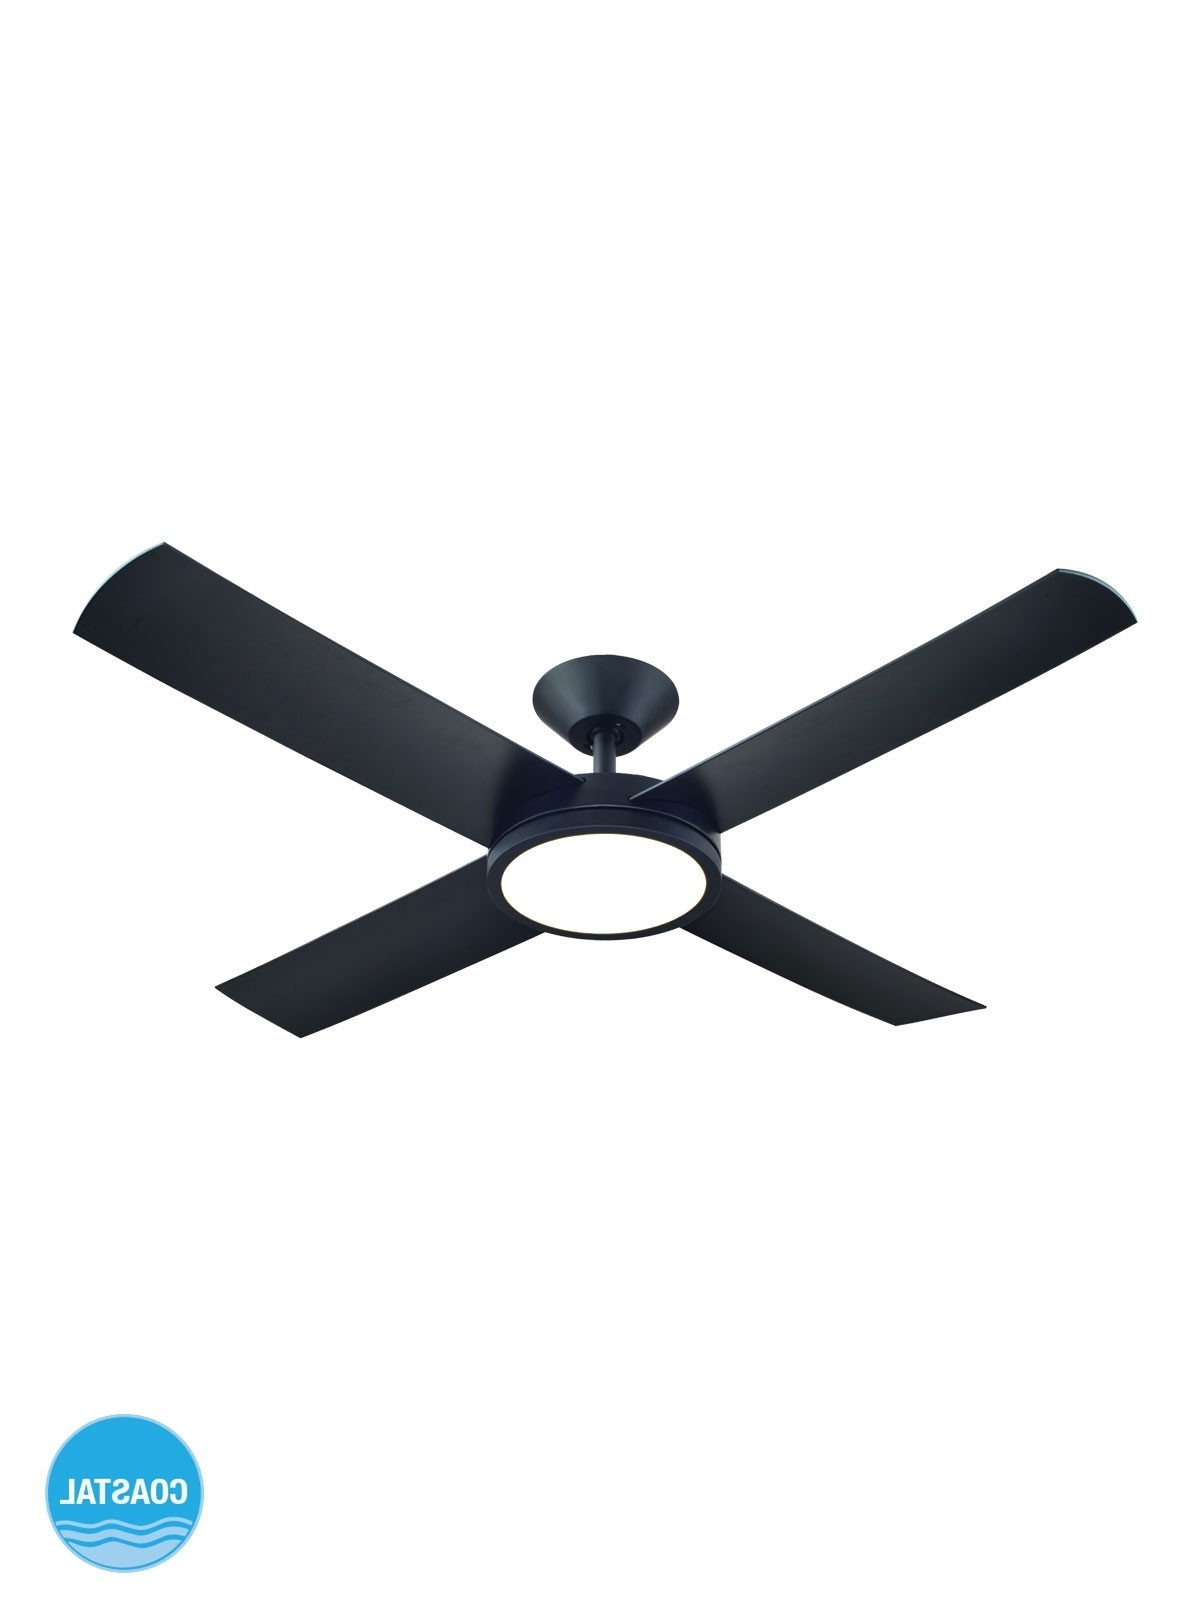 Famous Outdoor Ceiling Fan With Light Under $100 Throughout Aero 132cm Fan With Led Light In Black (View 9 of 20)